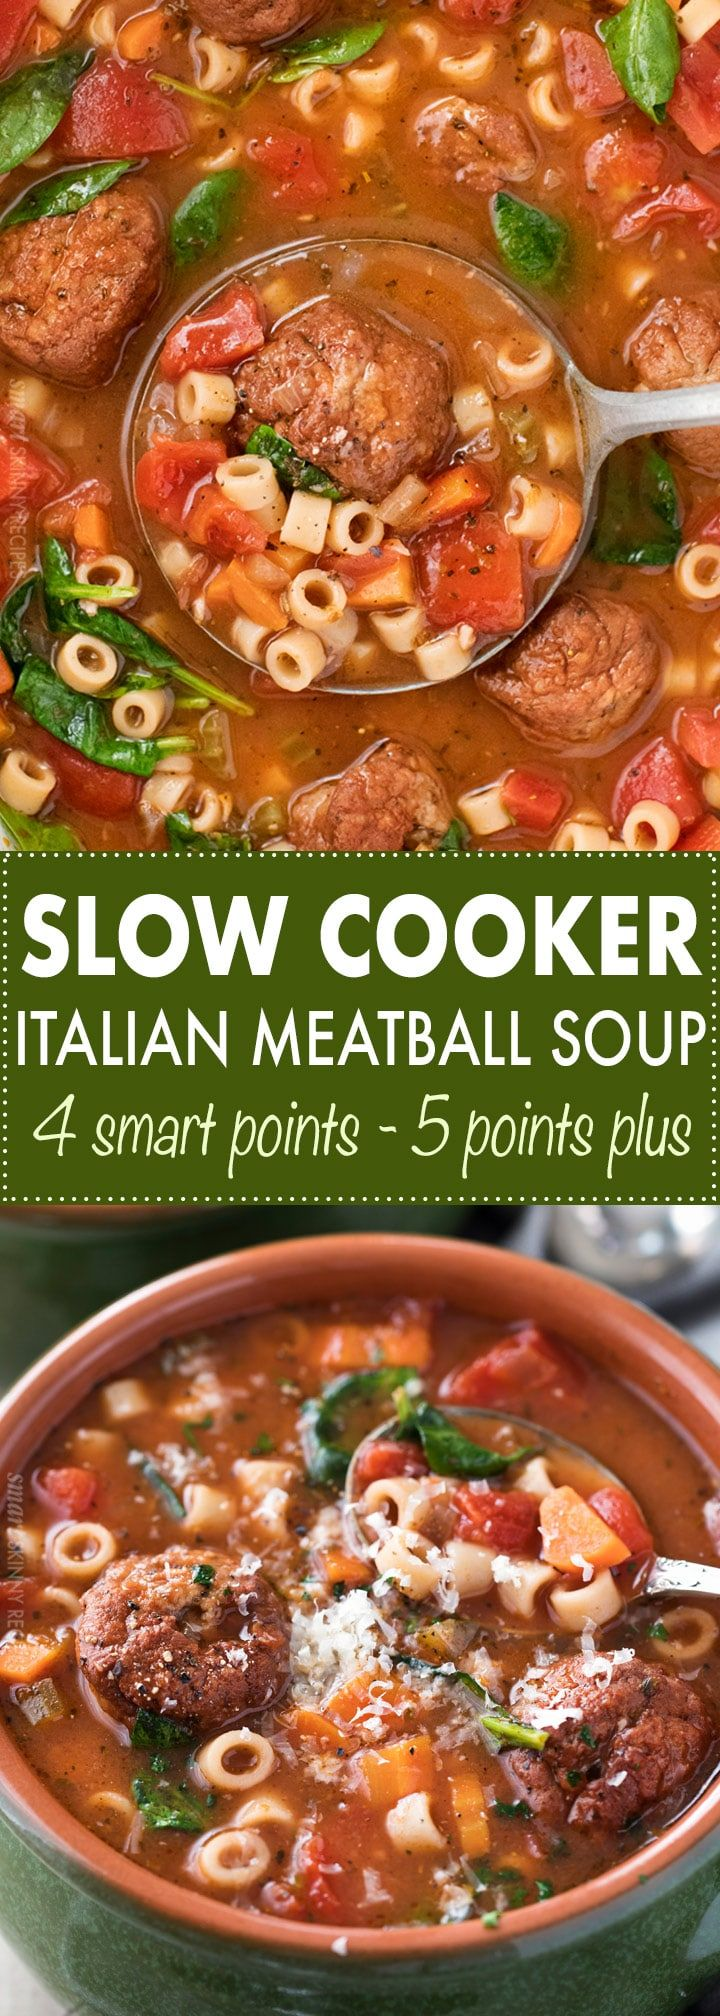 This Slow Cooker Italian Meatball Soup is hearty, easy, and incredibly satisfying!  You'll never guess it's only 4 smart points per serving. | #italian #meatball #soup #slowcooker #crockpot #weightwatchers #freestyle #smartpoints